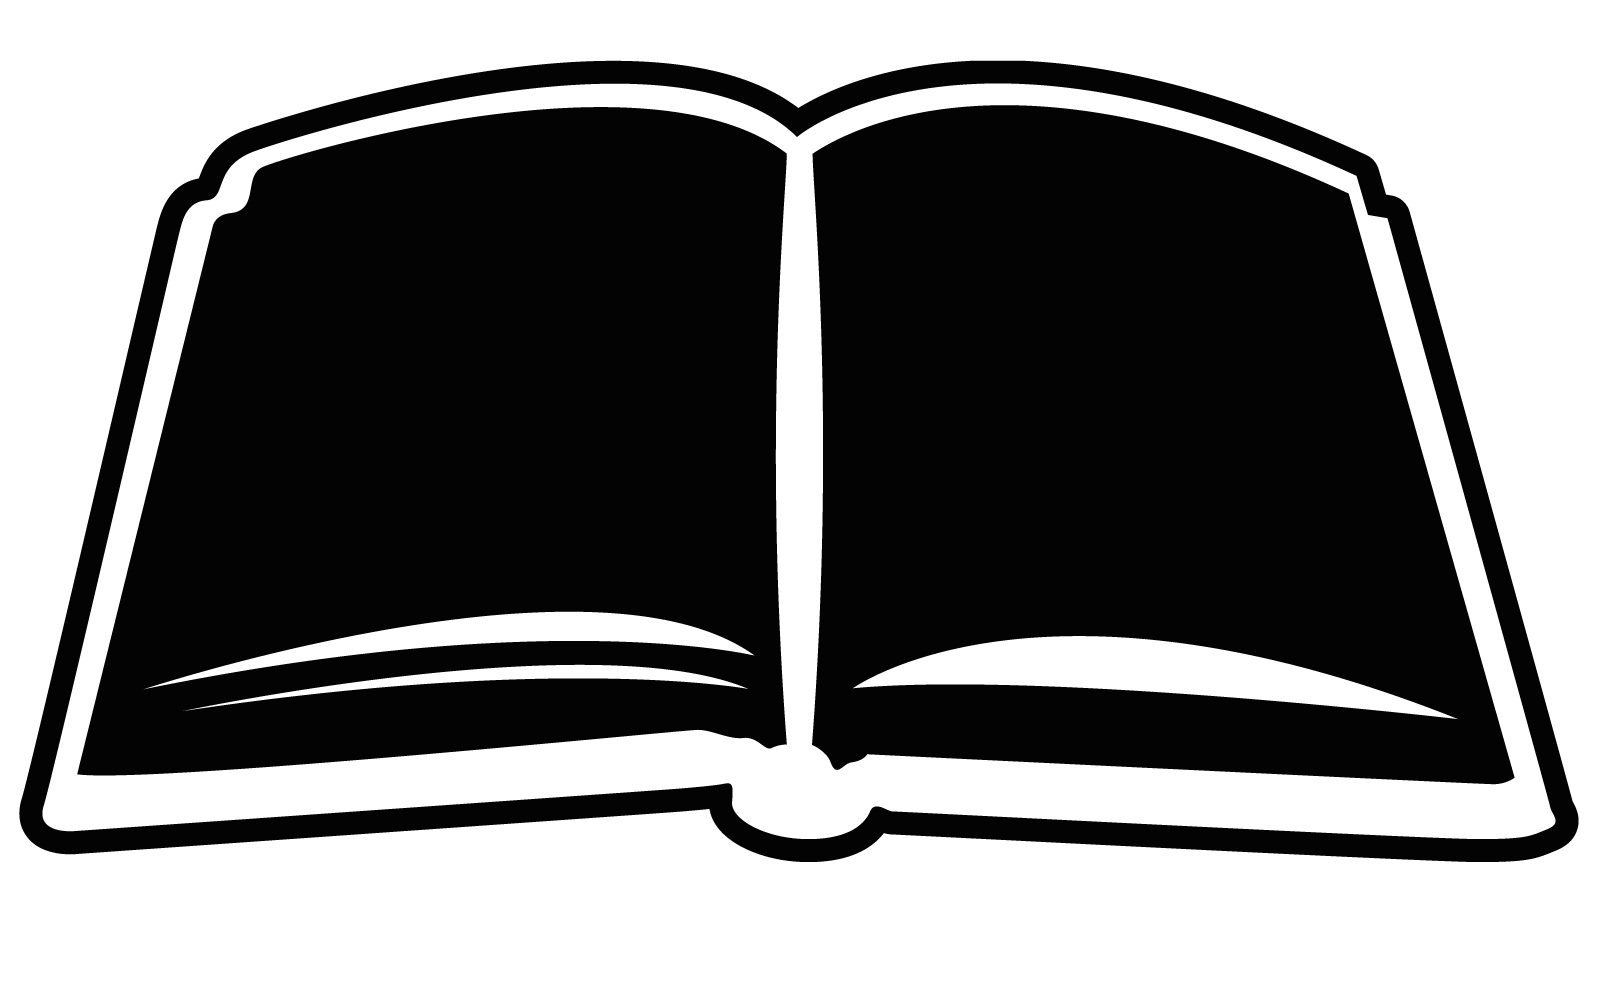 PNG Open Book Black And White - 77640